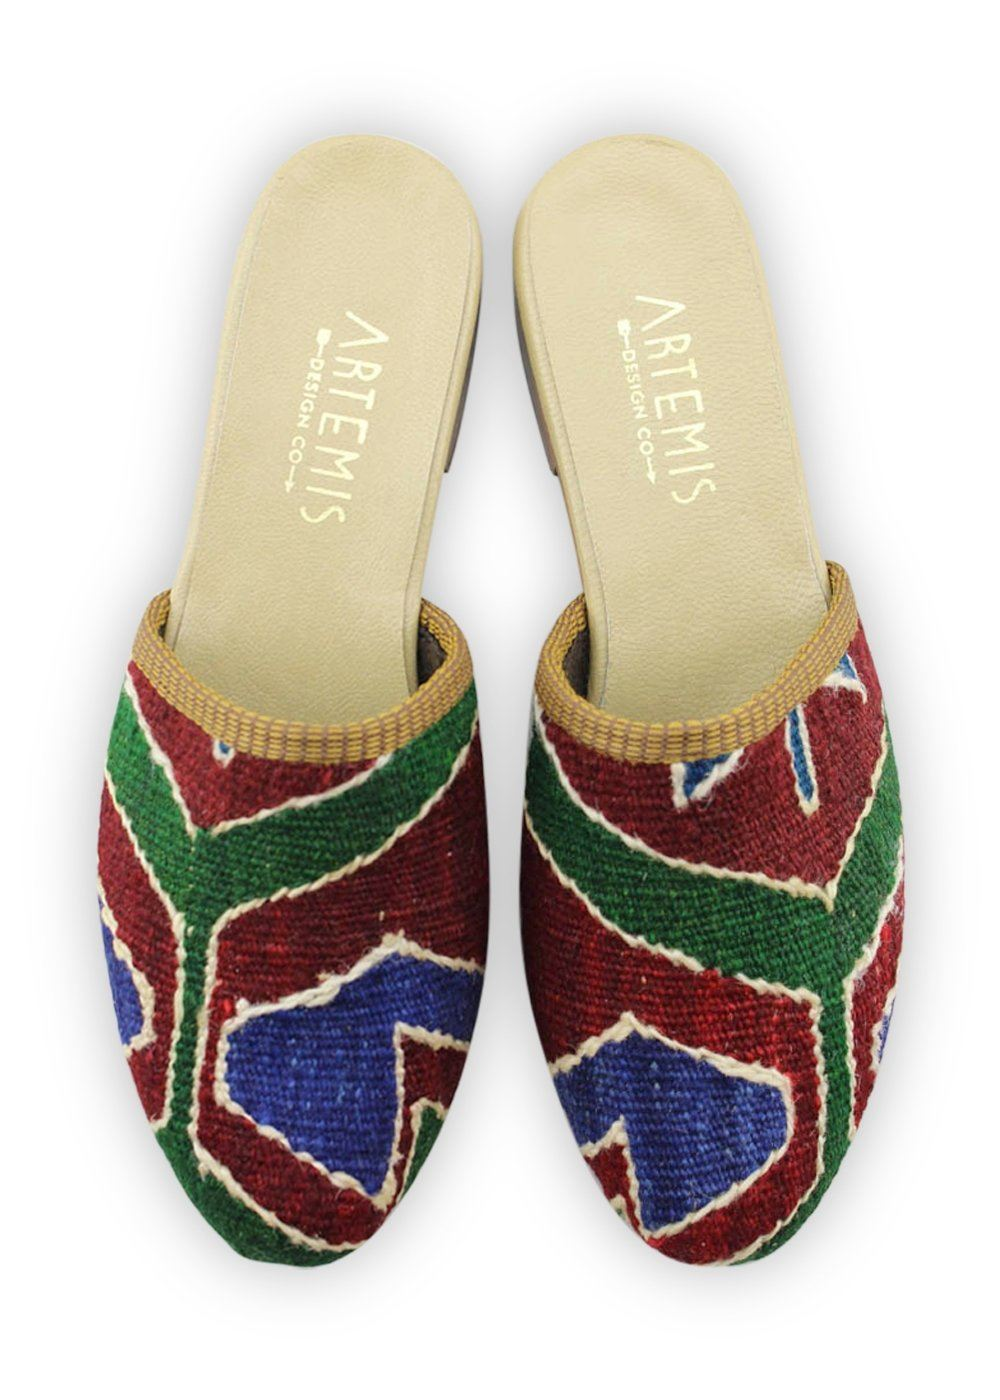 Archived Women's - Size 39 (US 9) Women's Kilim Slide